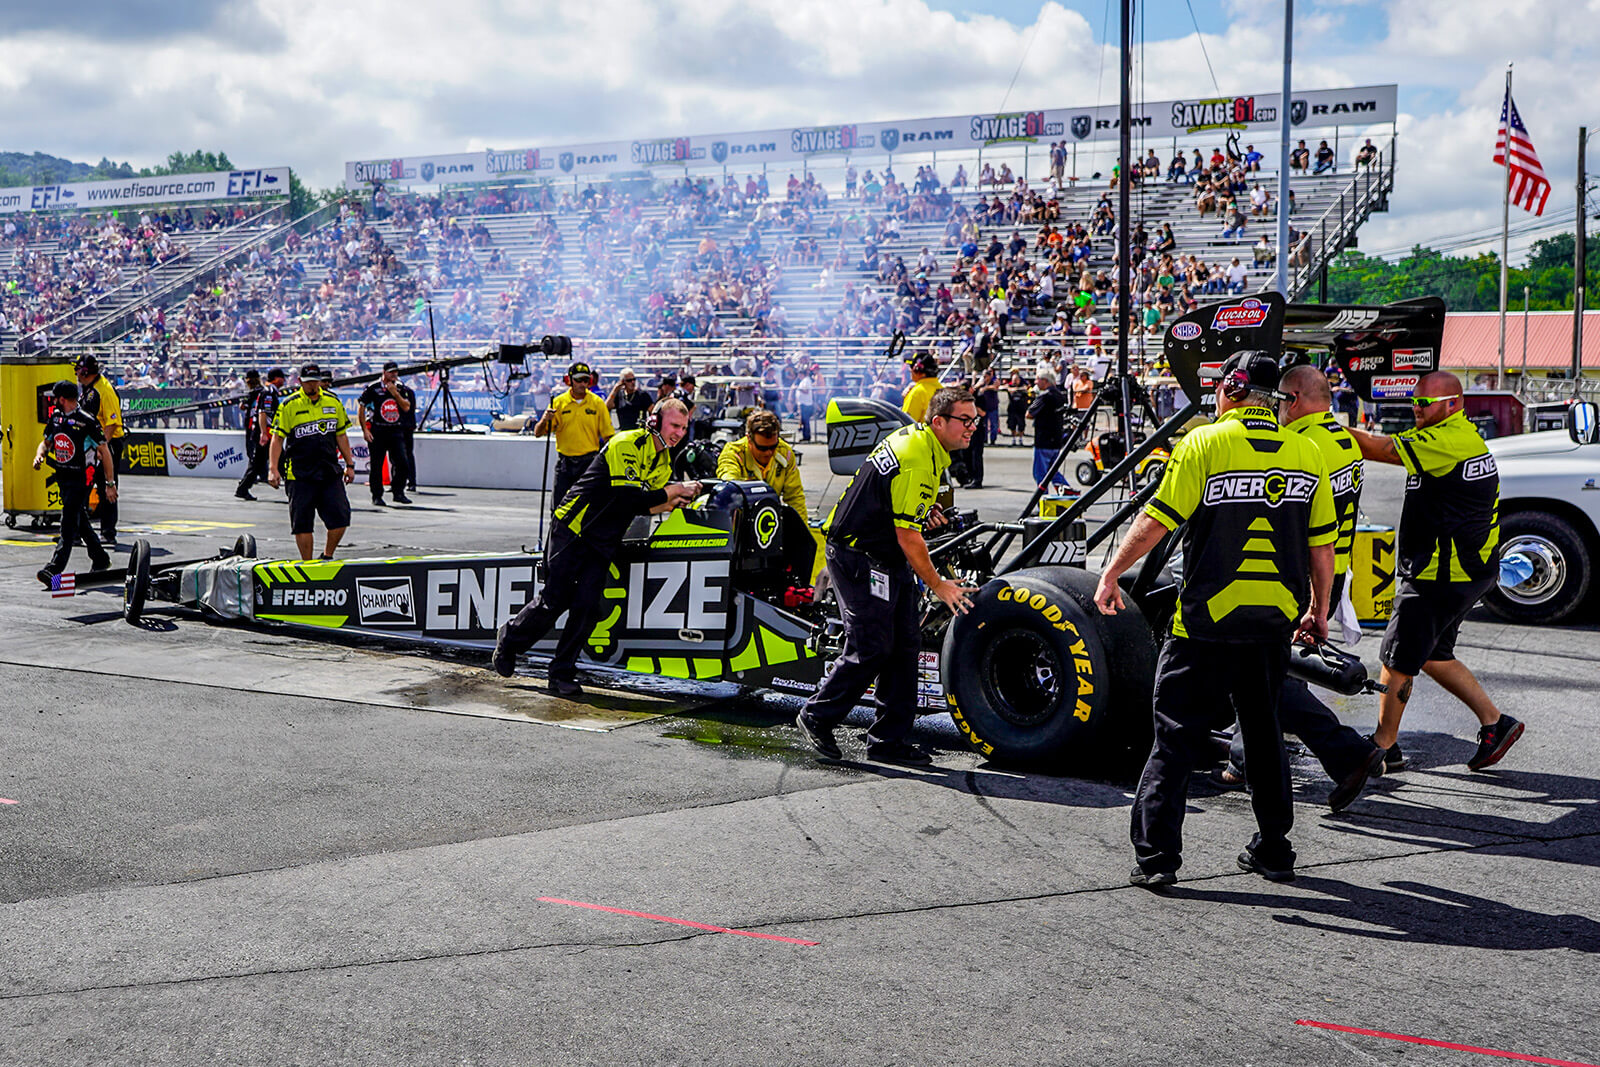 MBR battled adversity all weekend long but the team was able to rally to a 9th place qualifying position to match up against Brandon Greco in the first round of eliminations.